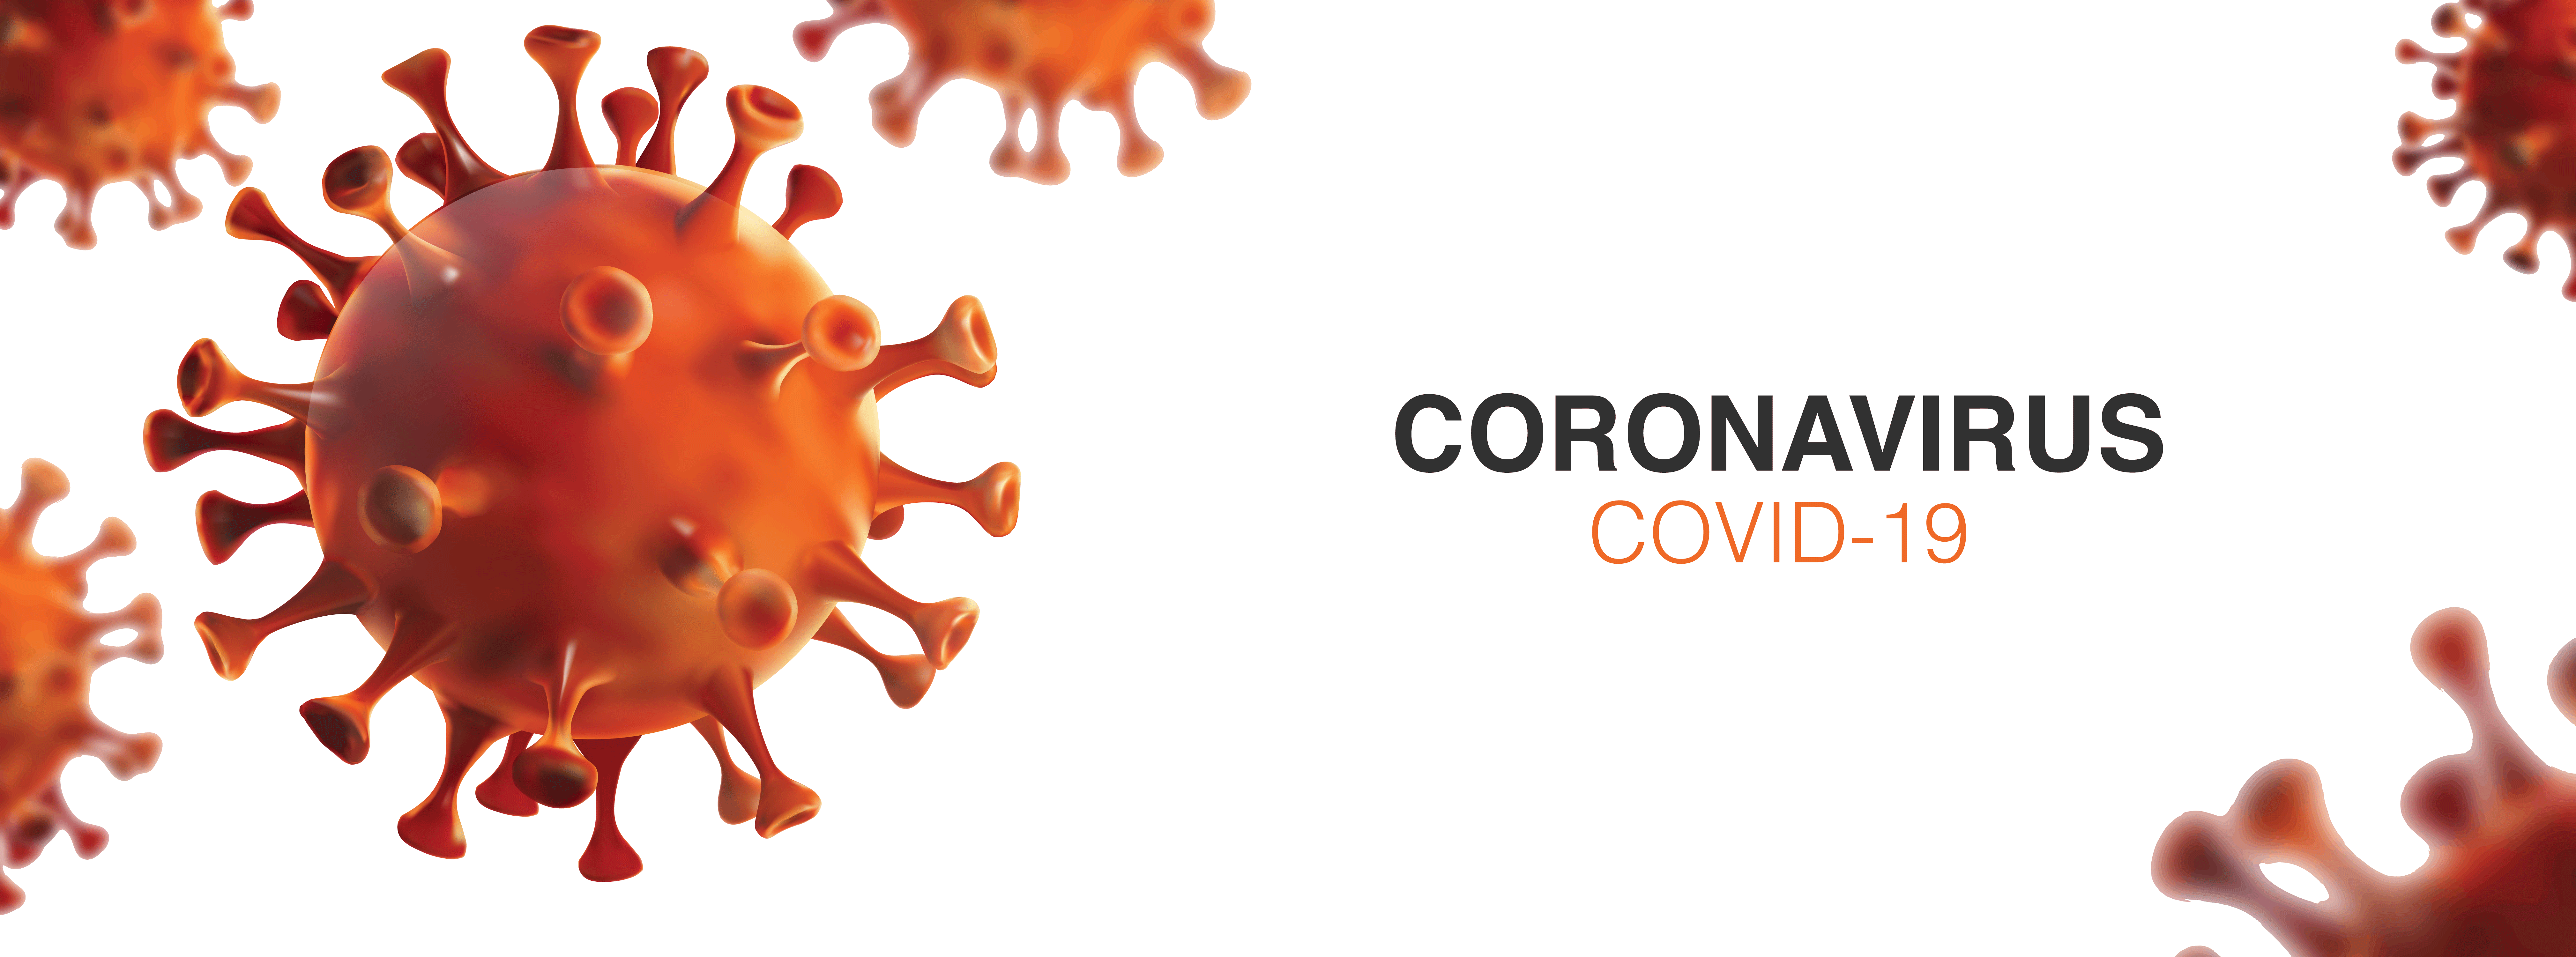 Covid 19 Virus Image Png